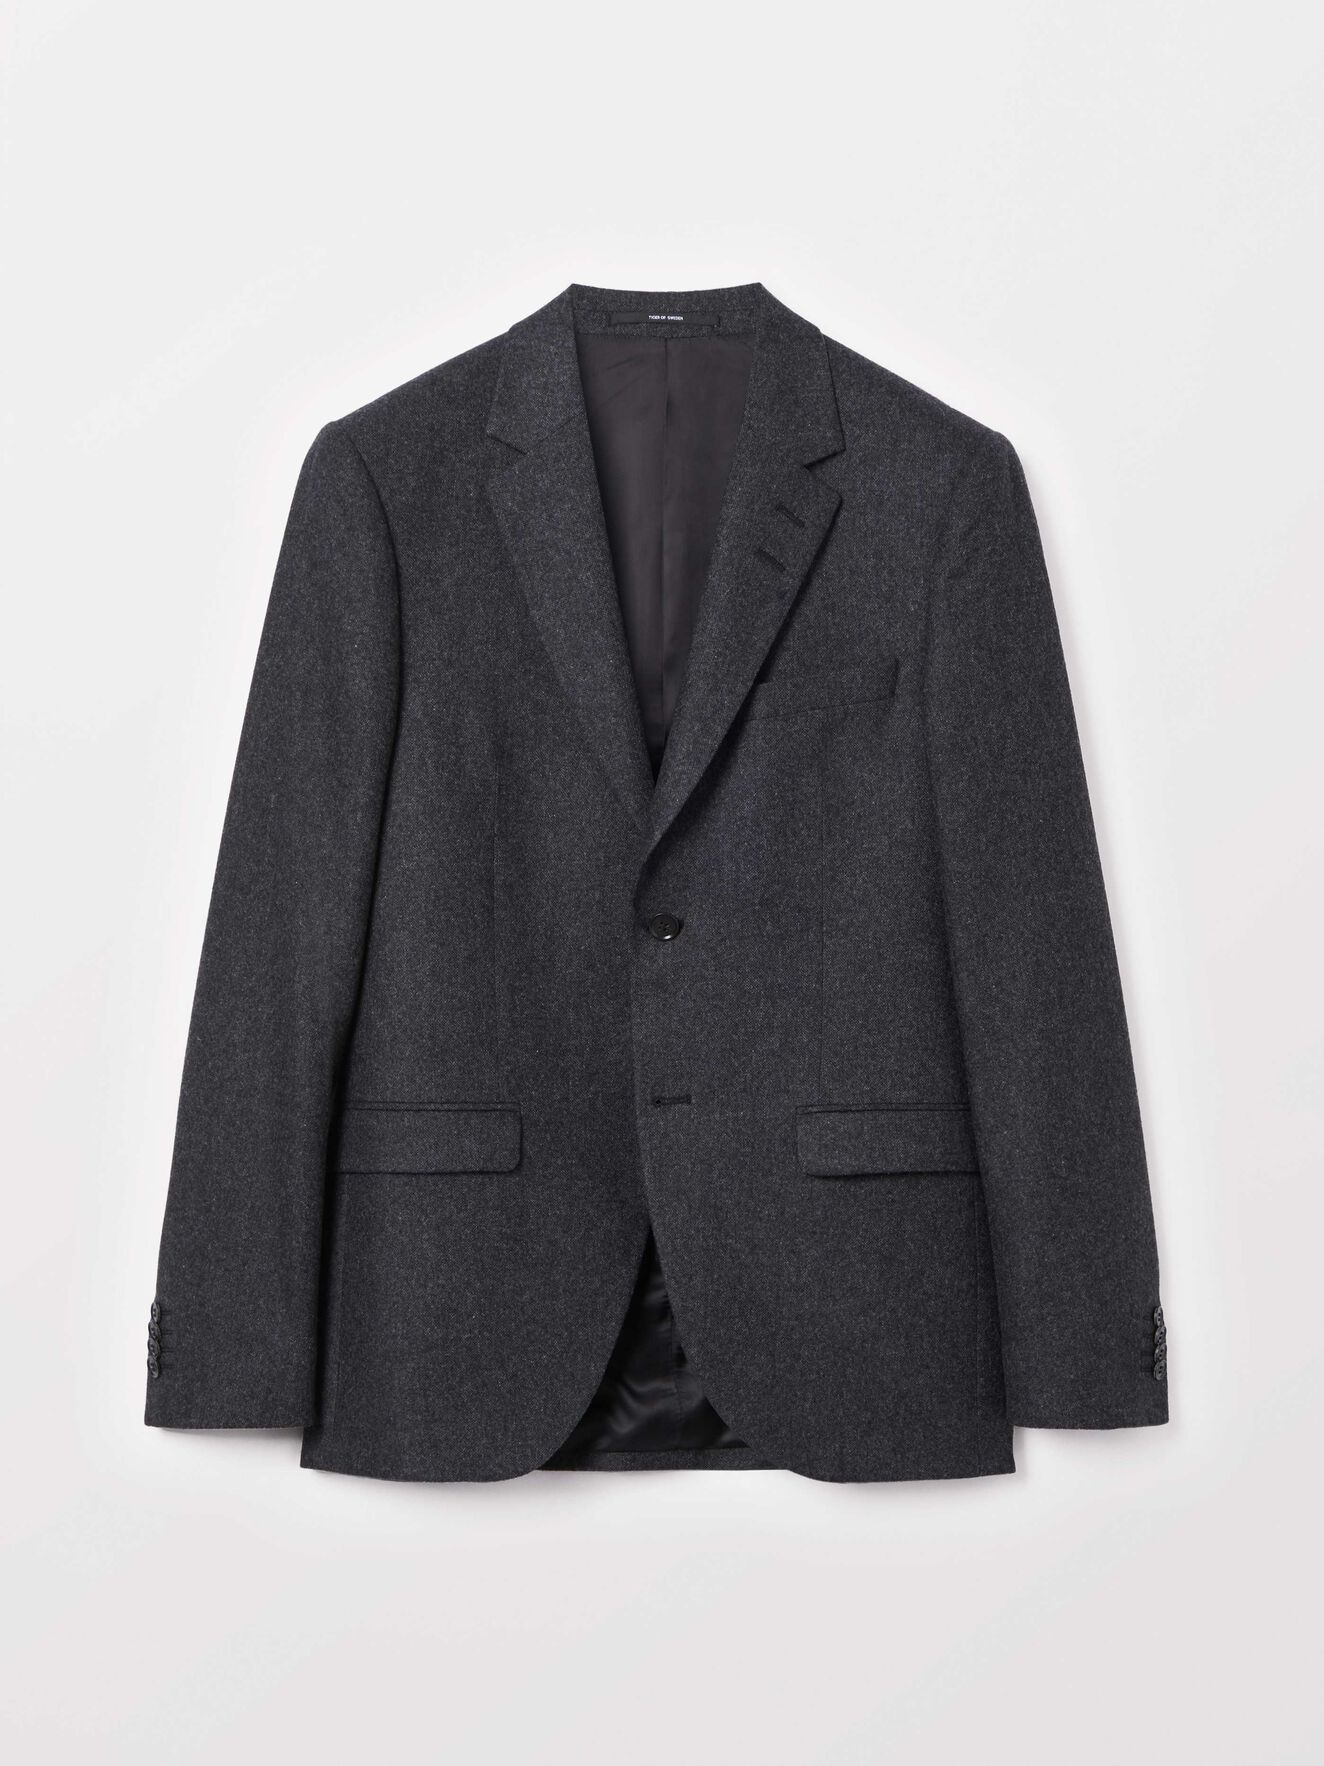 Jamonte Blazer in Charcoal from Tiger of Sweden